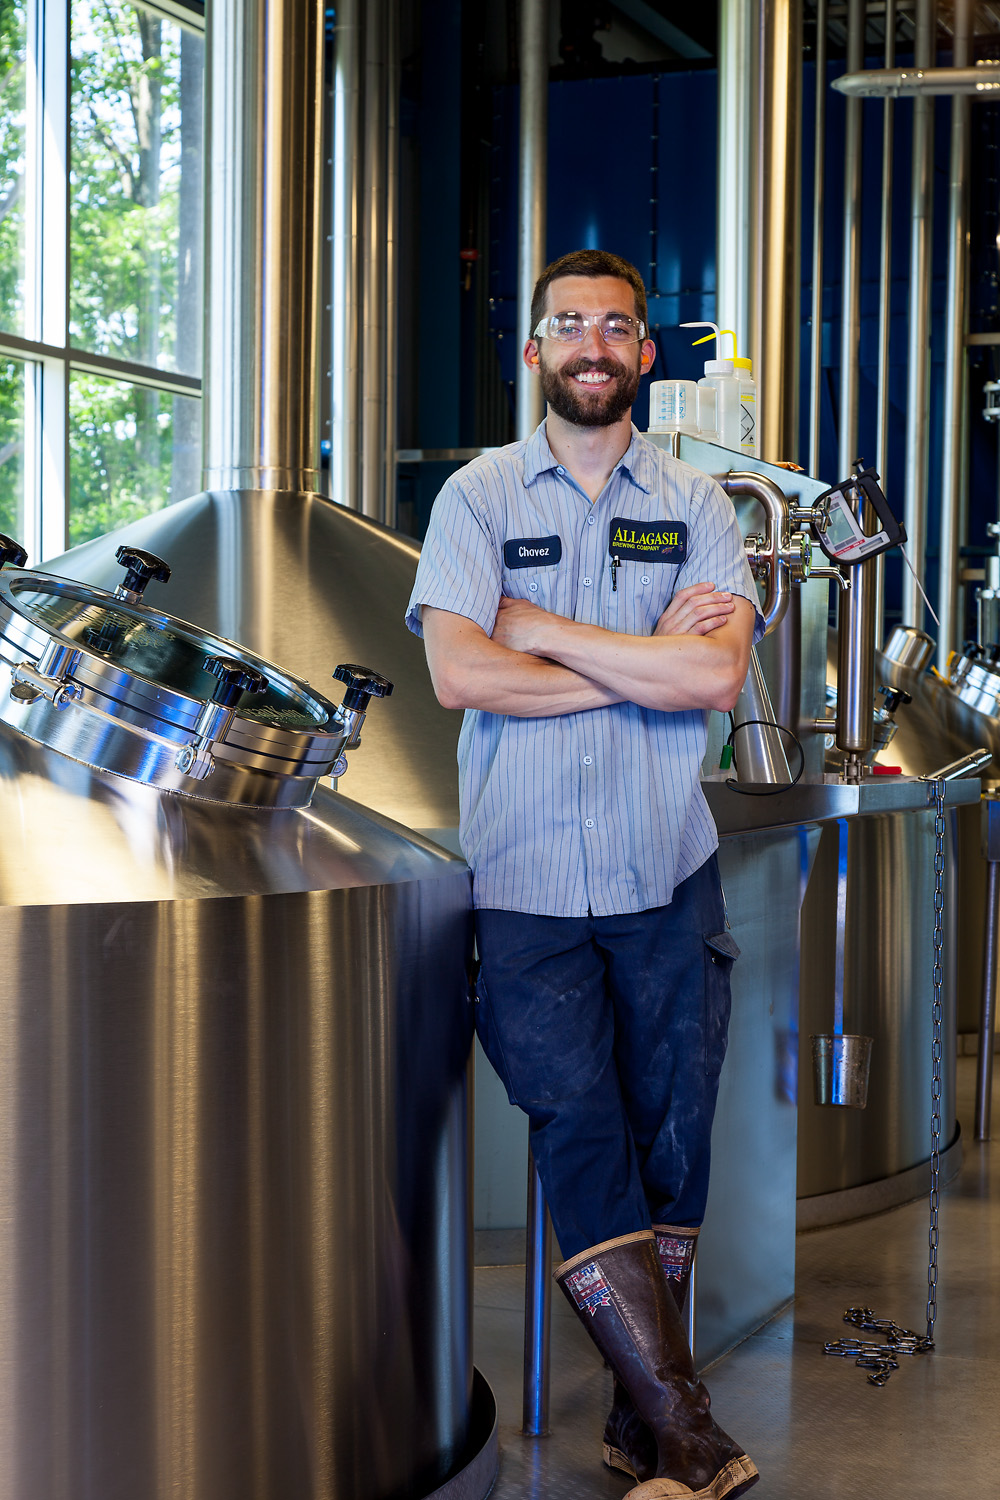 Patrick Chavanelle, Brewer Allagash Brewing Co. Portland, ME Established in 1995